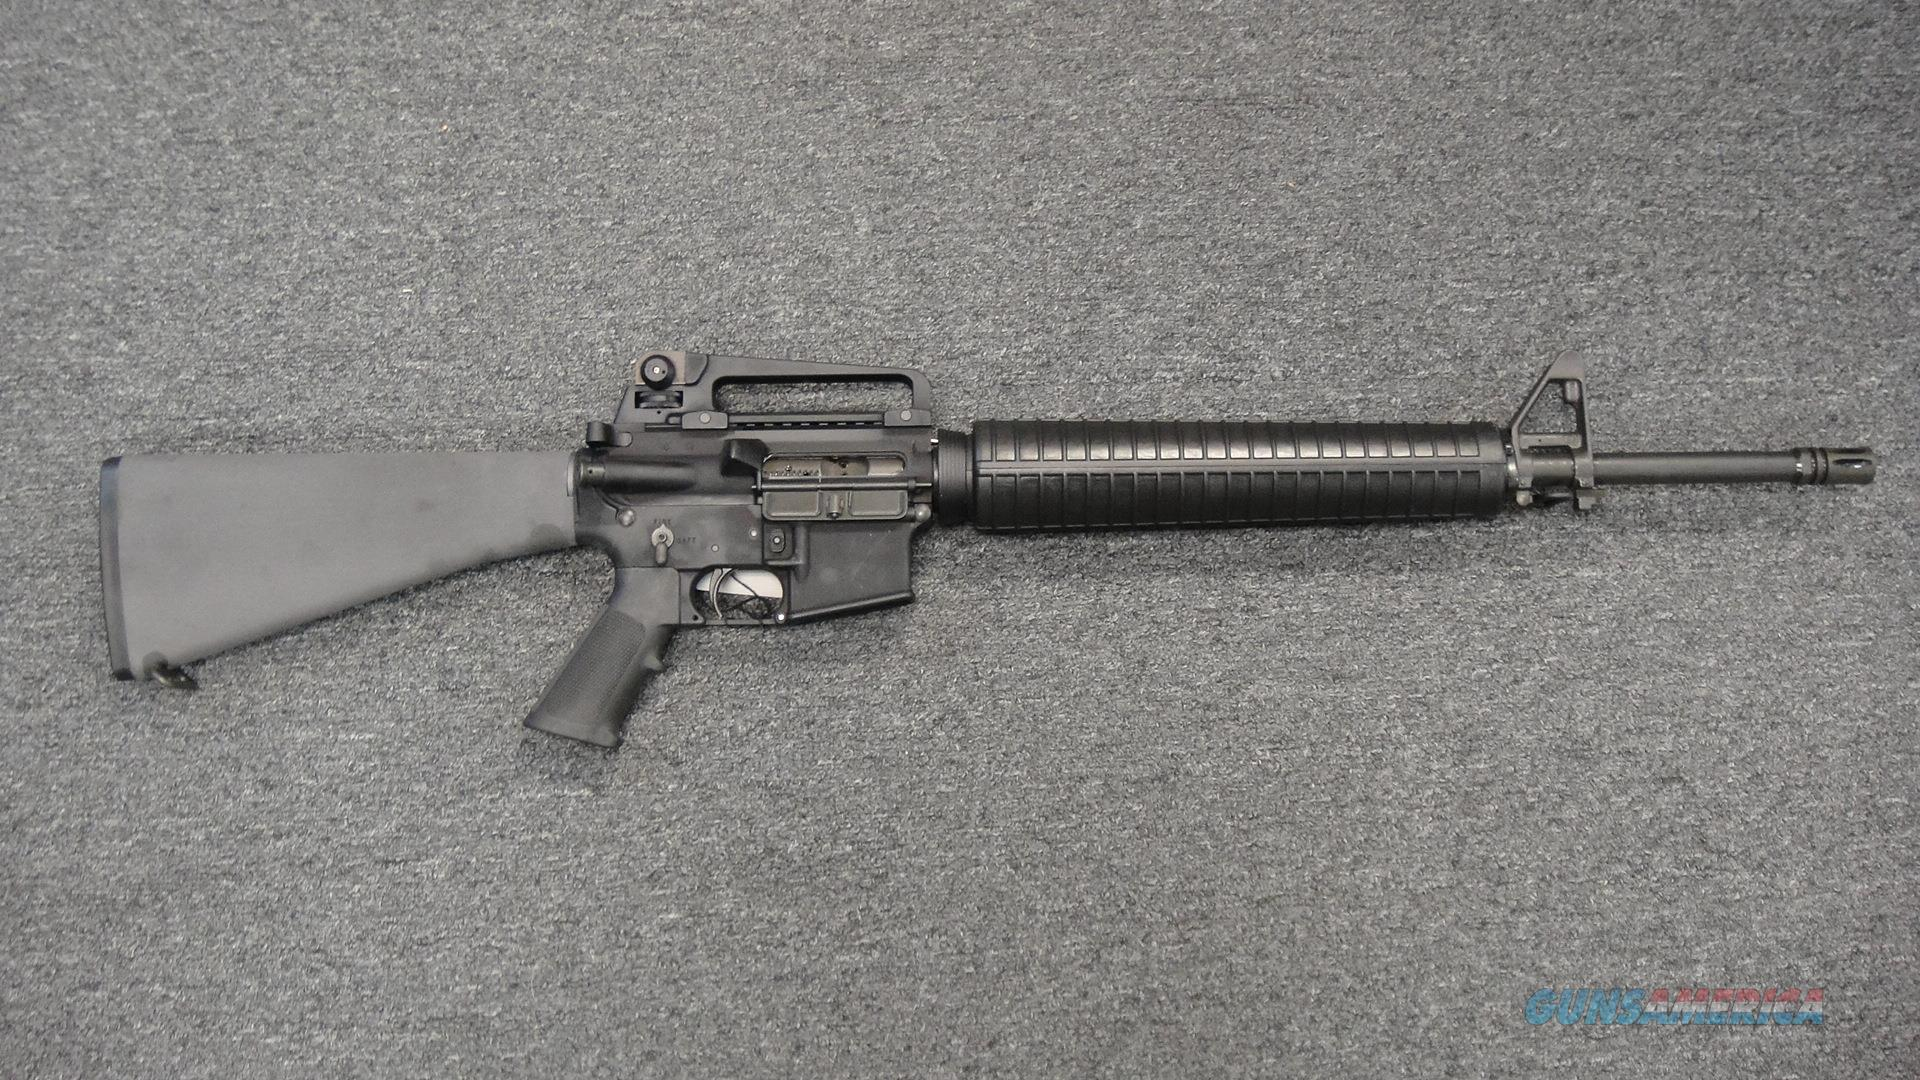 Colt AR-15 A4 (A2 clone) for sale